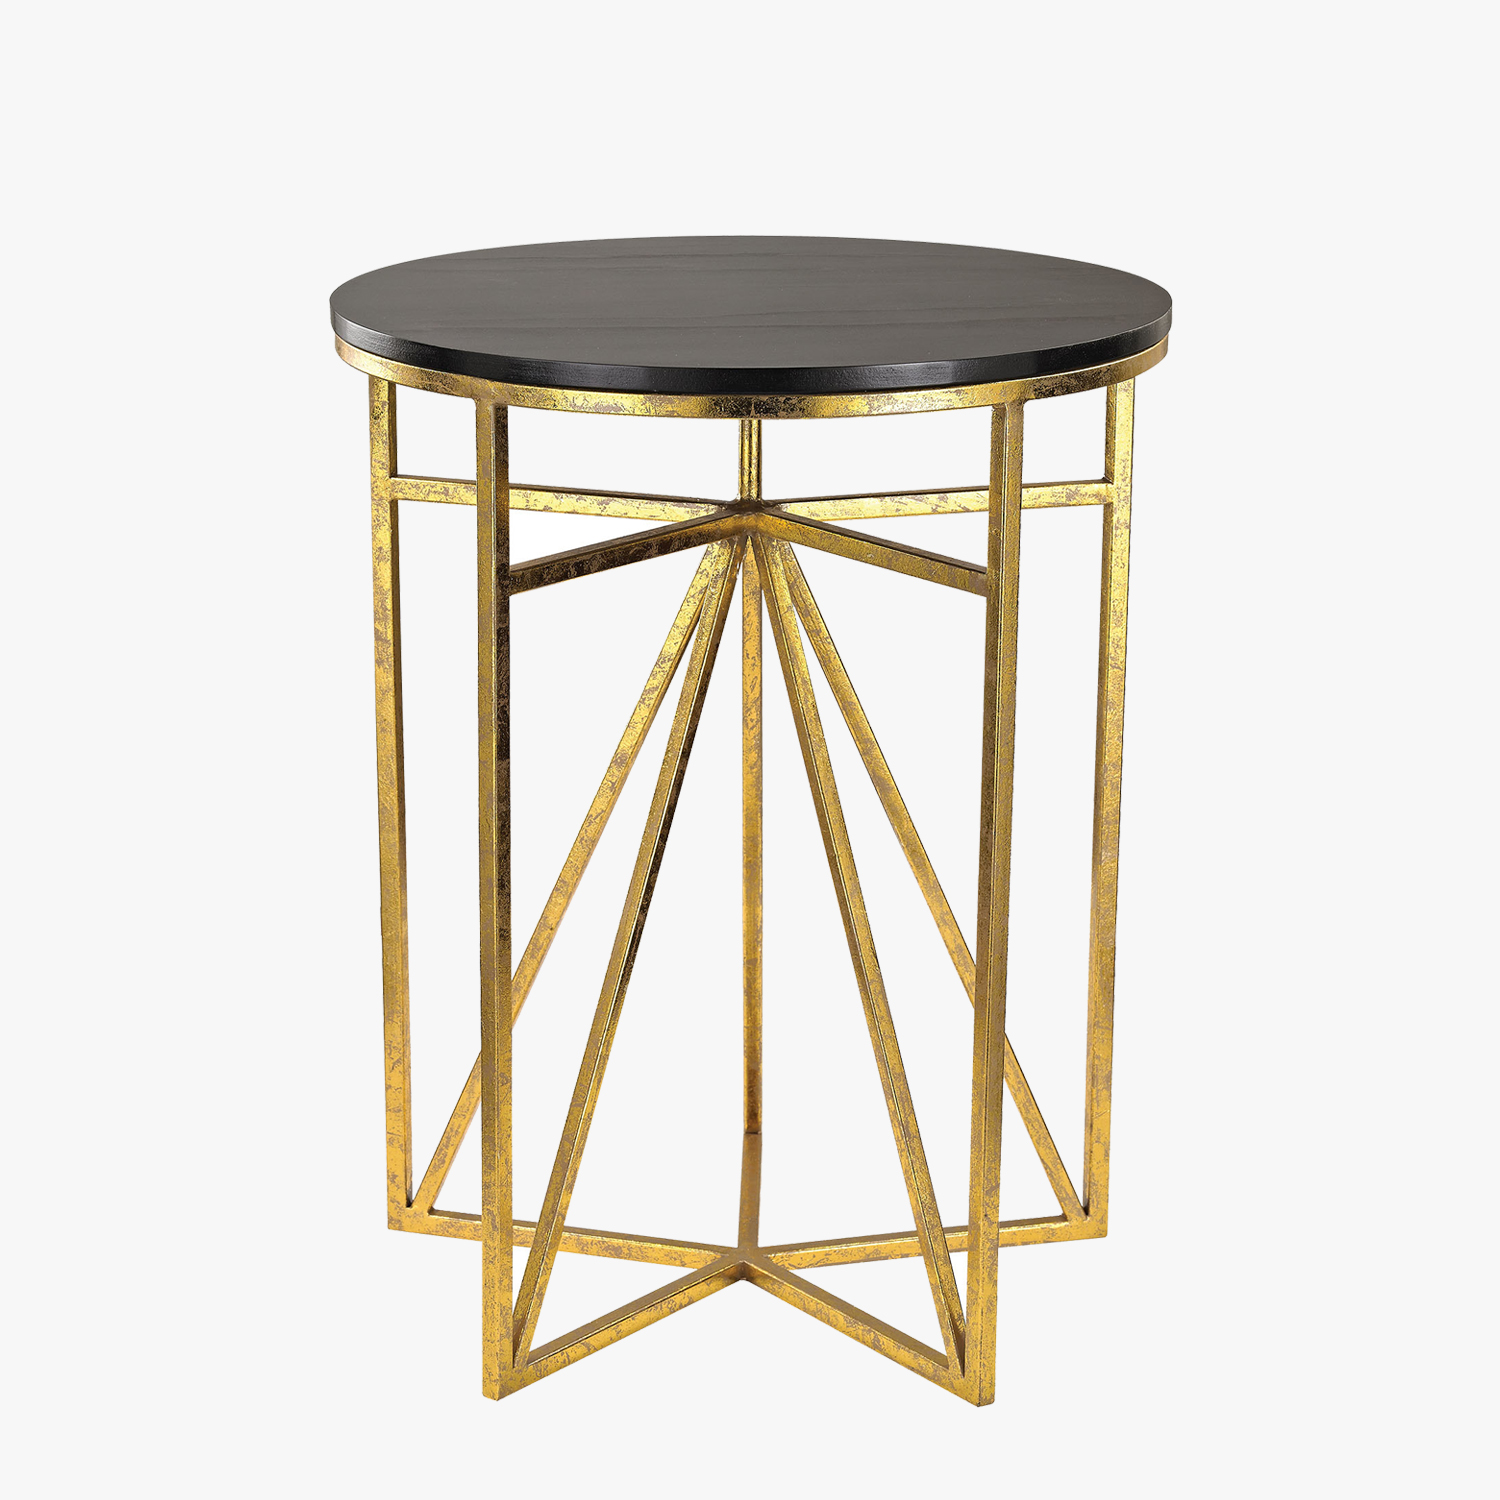 etoile antique gold accent table dear keaton round pedestal drum throne inch oak bar kids furniture edmonton wide nightstand collapsible coffee ikea rustic metal and wood end